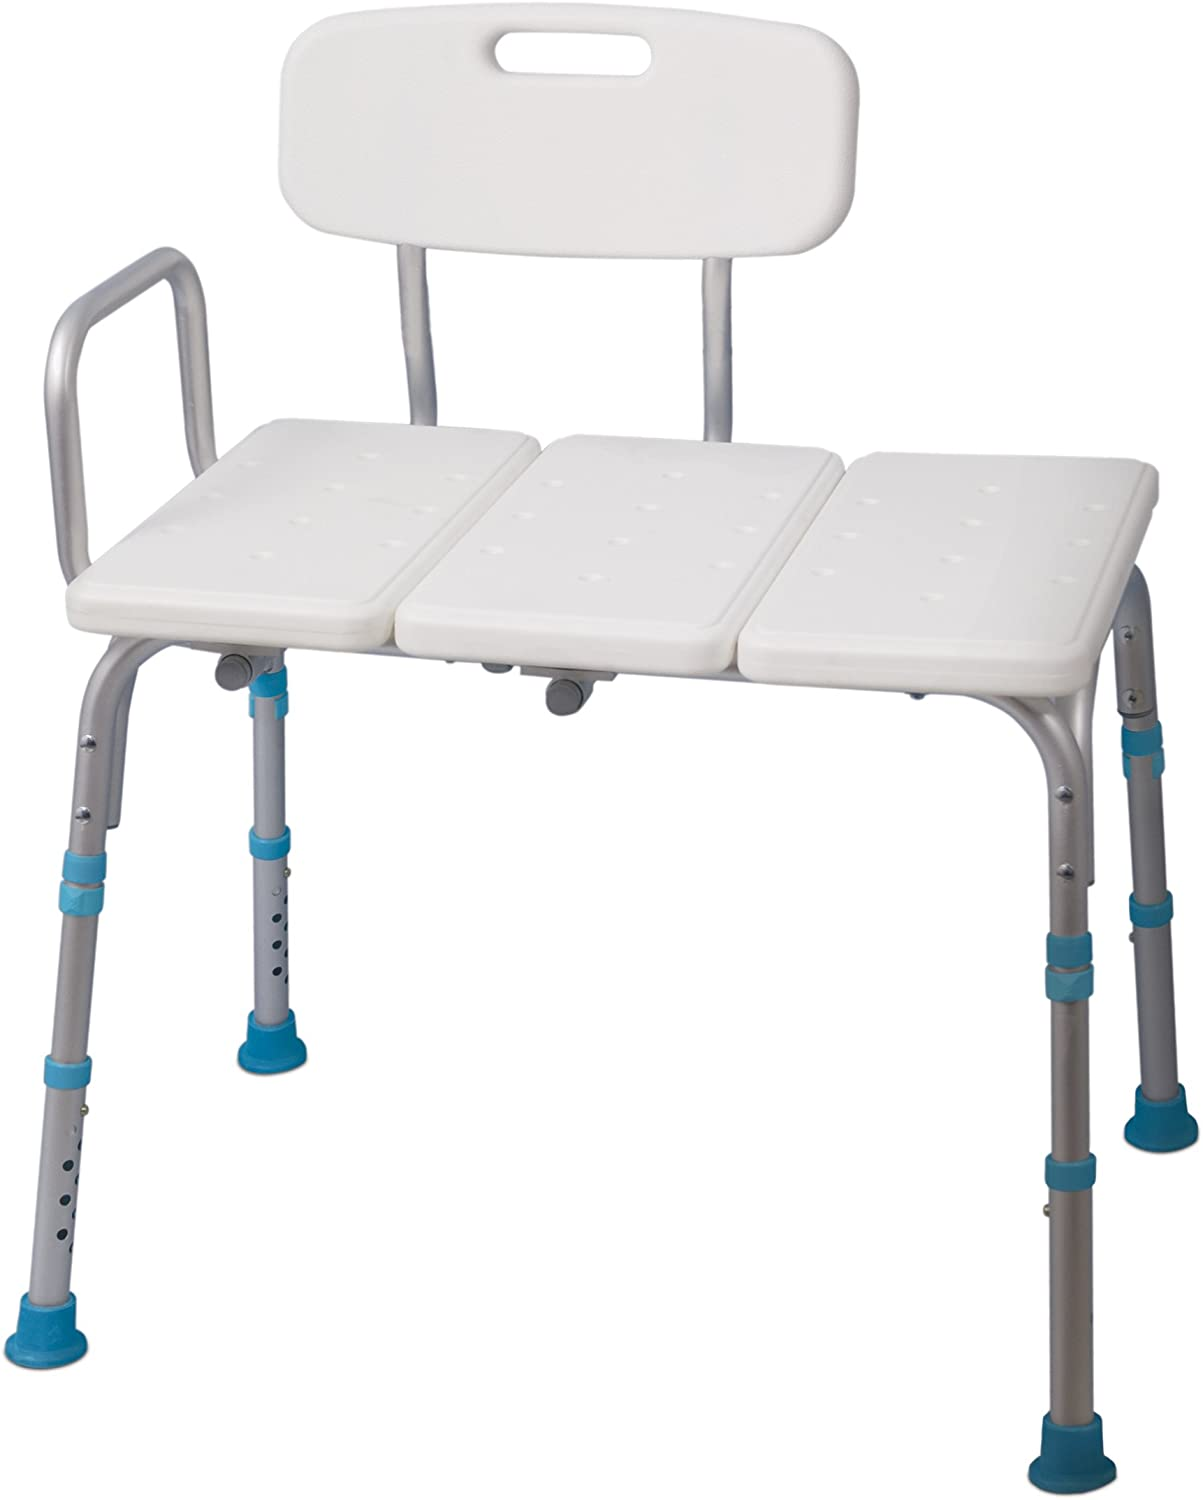 Aquasense Adjustable Bath and Shower Transfer Bench with Reversible Backrest 71r9qK52RBLSL1500_